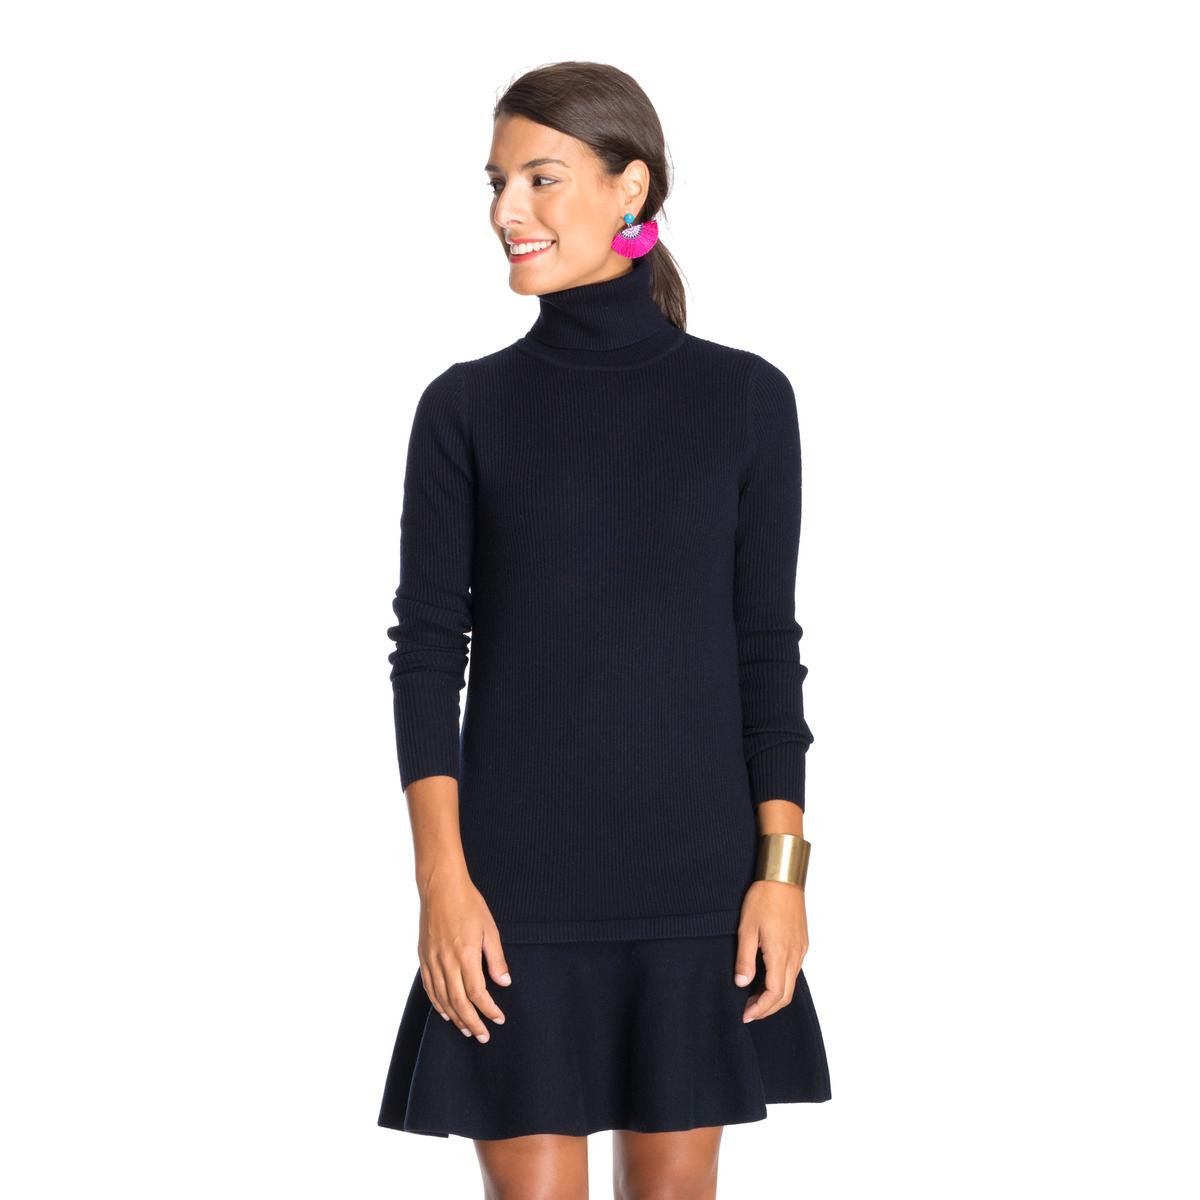 Demylee- Danny Turtleneck Dress, $270 (Tuckernuck)